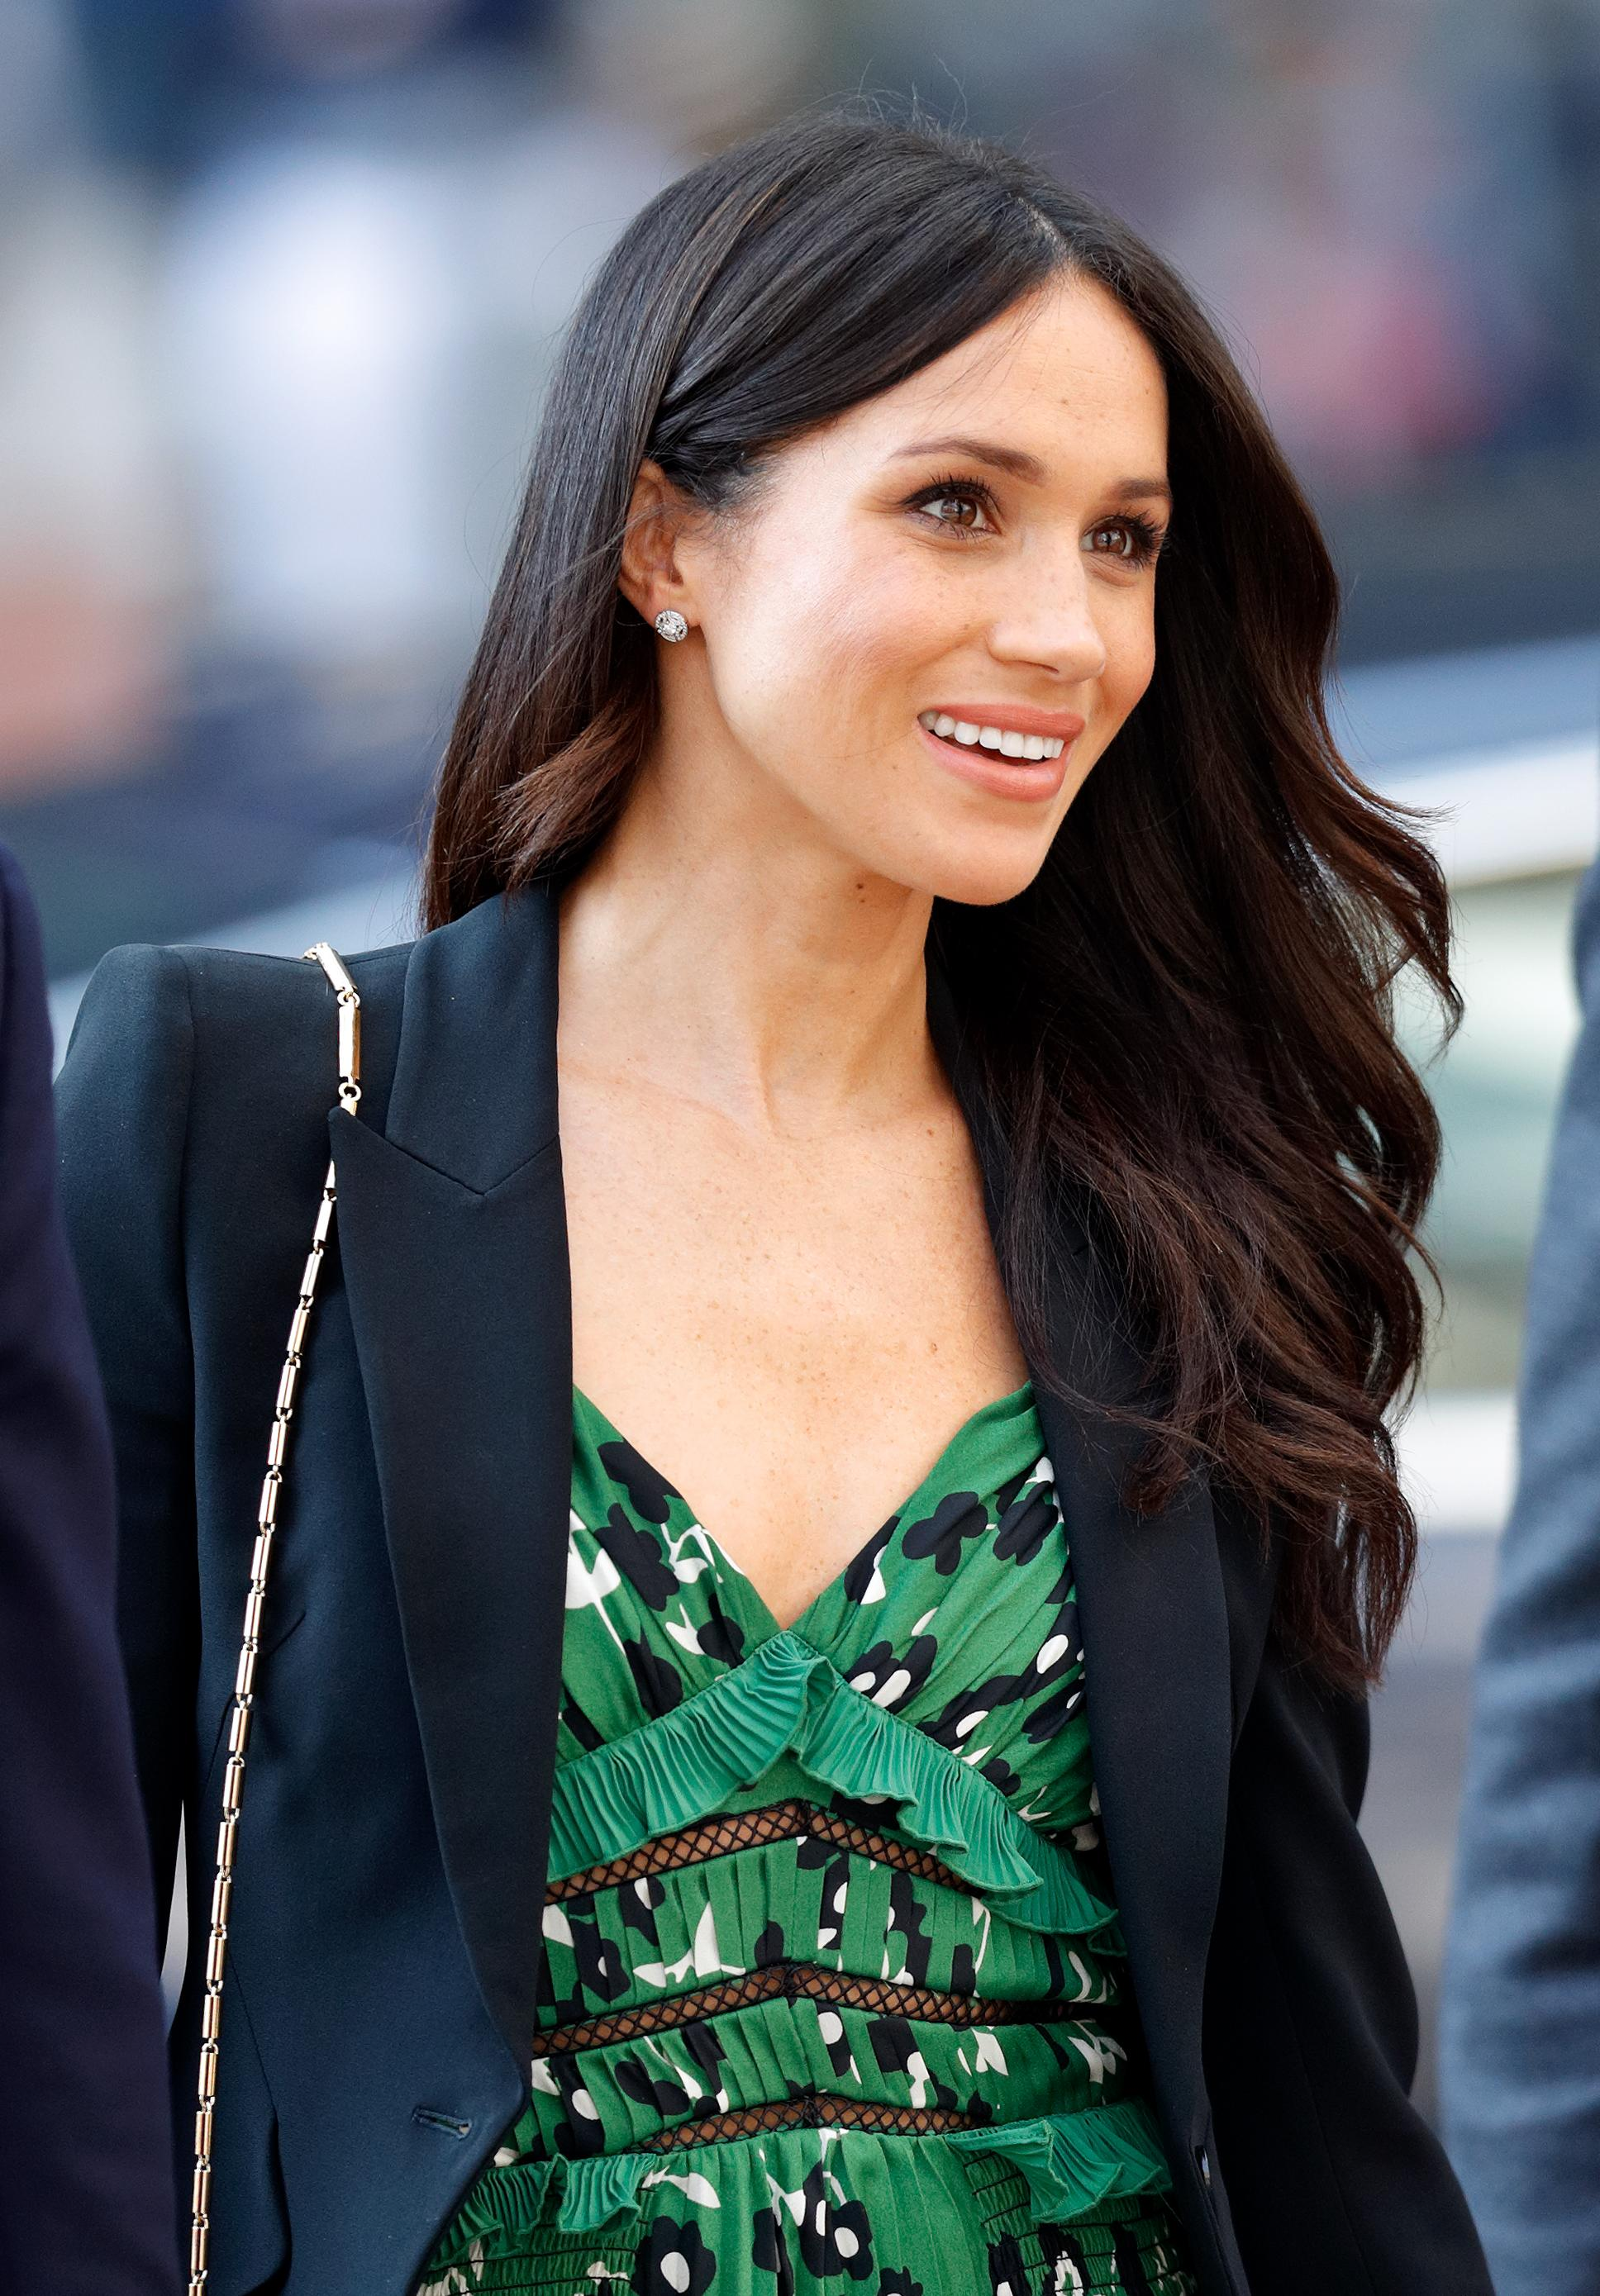 The Only Color Meghan Markle Has Worn Since Becoming A Royal Figure Is Green